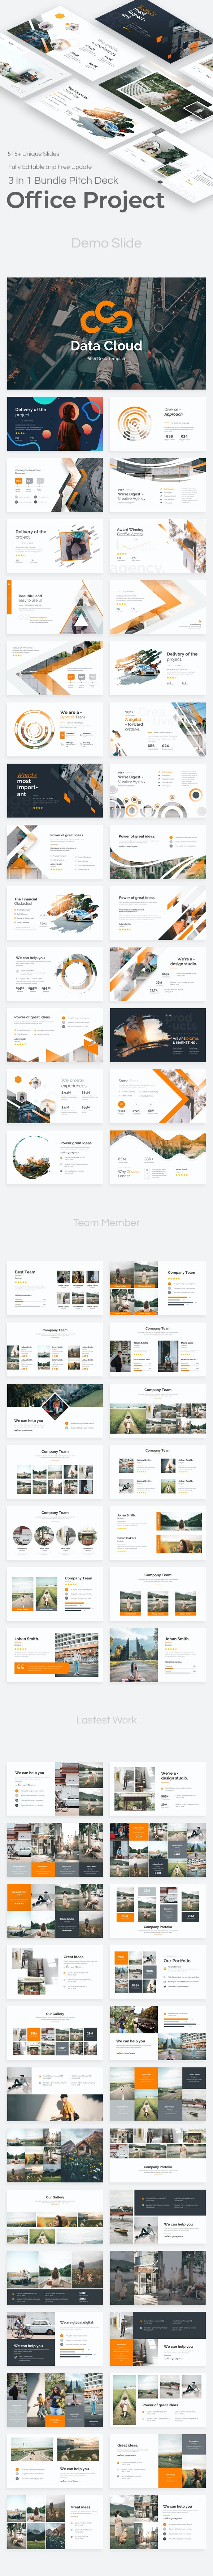 Office Project 3 in 1 Pitch Deck Keynote Bundle Template - Creative Keynote Templates